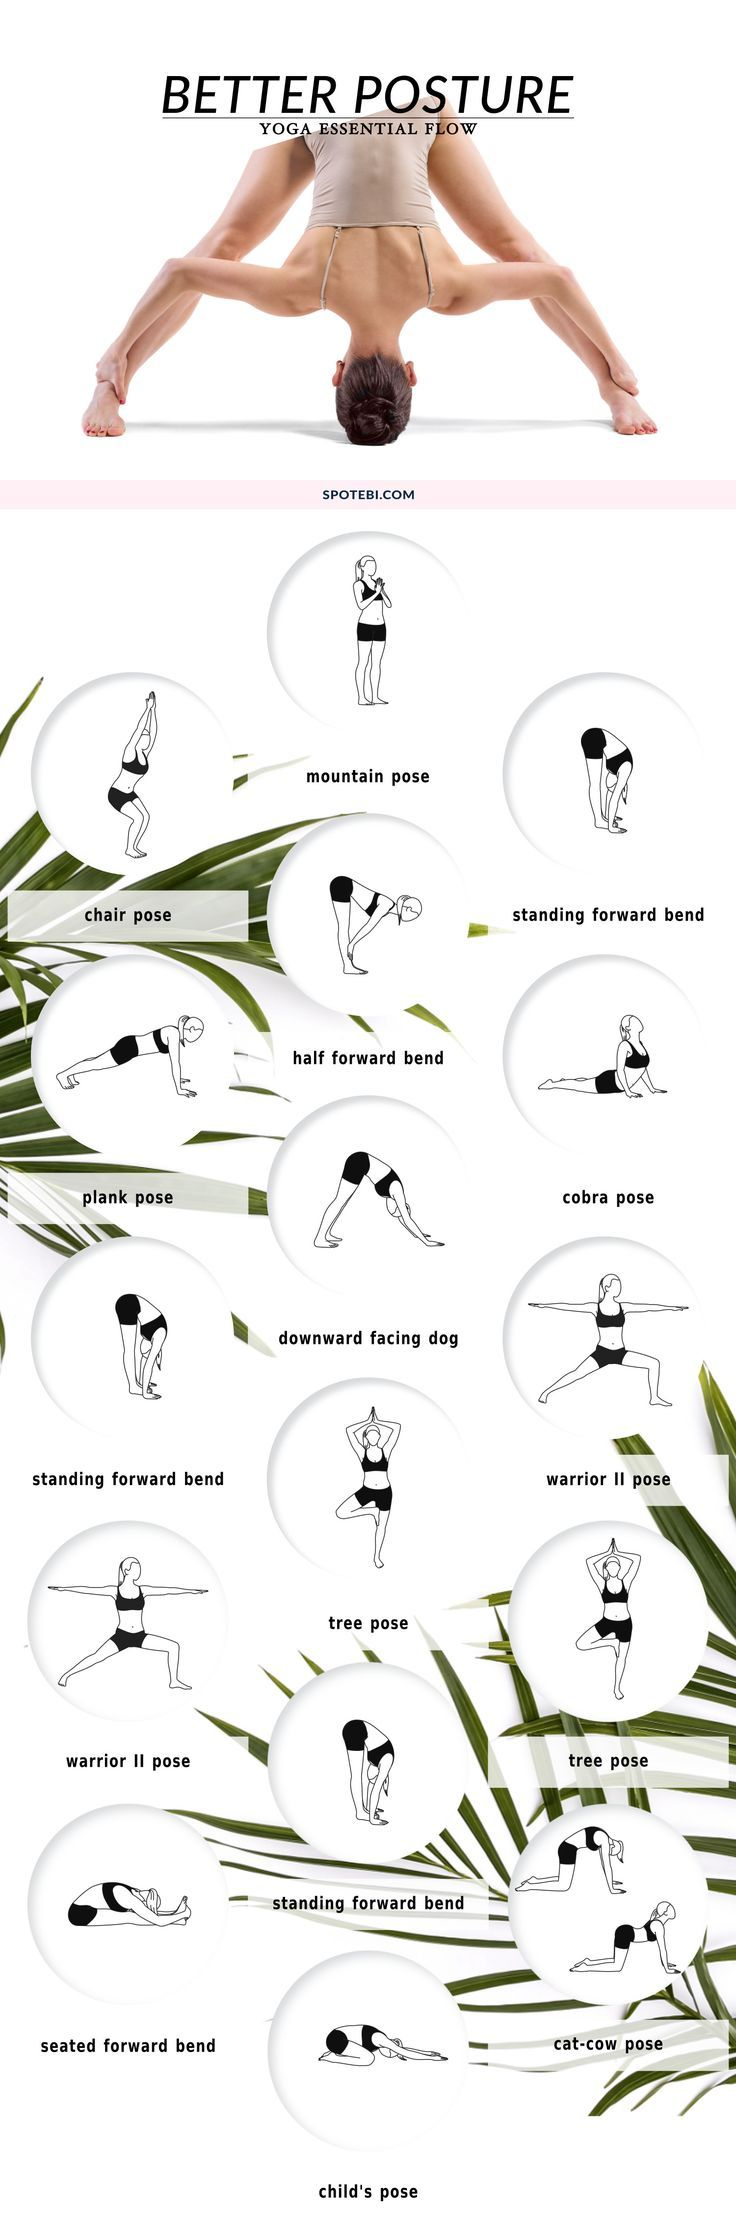 Try these yoga corrective poses to strengthen and stretch your back muscles and improve spinal alignment! This 10 minute yoga flow is designed to help you stand tall and become aware of your posture. For more Yoga you can check our Yoga course.